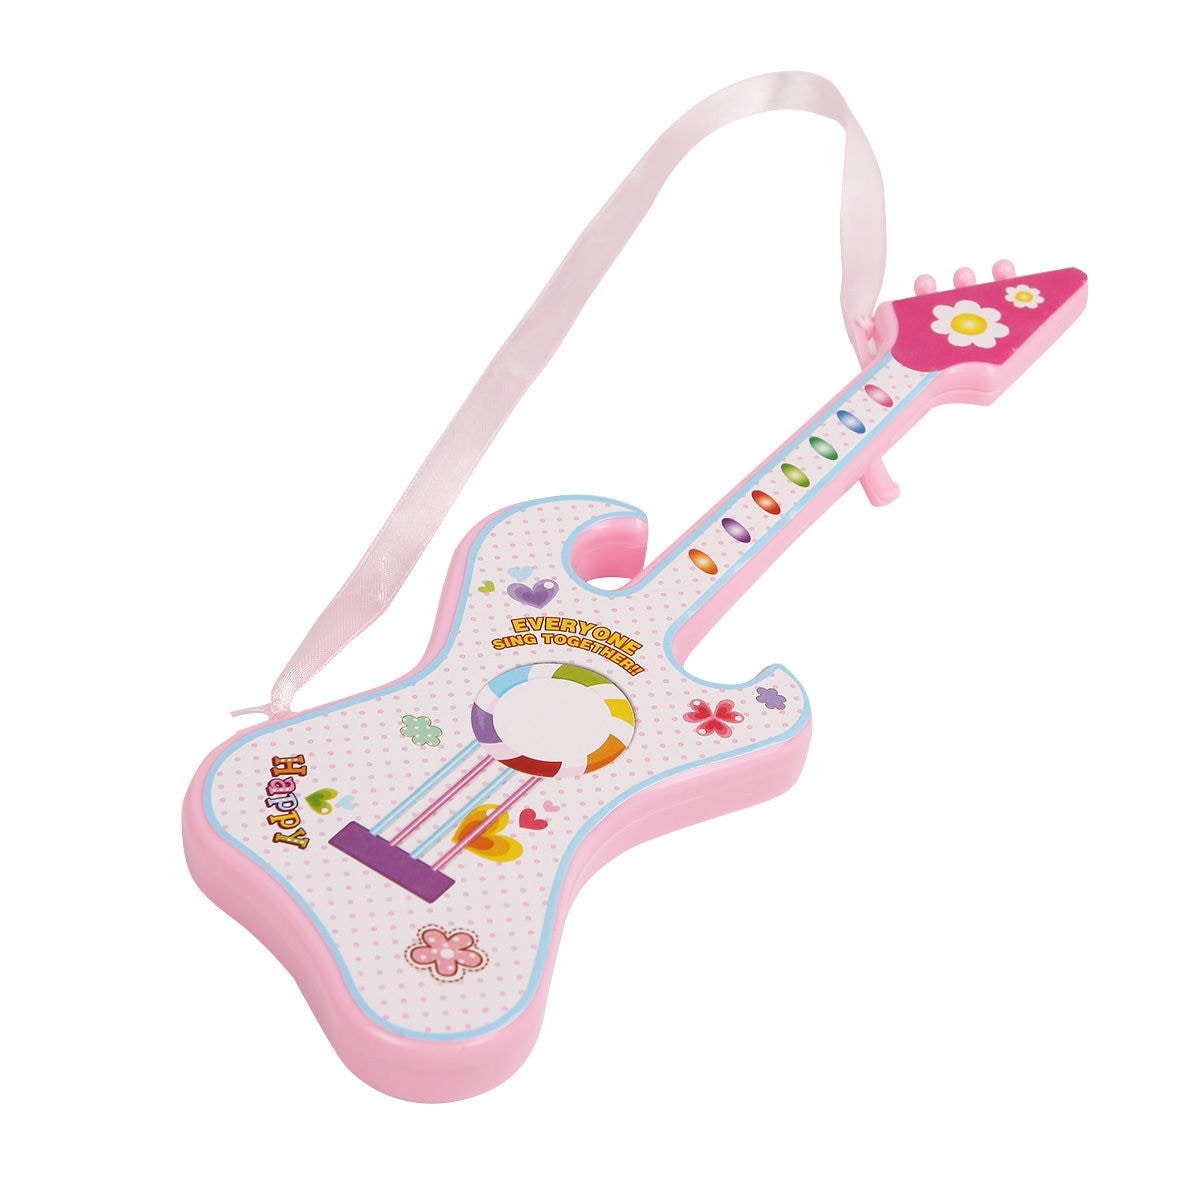 Costway 16'' Girl Doll Pretend Play Guitar Lifelike Singing 3 Songs Voice  Control - Red